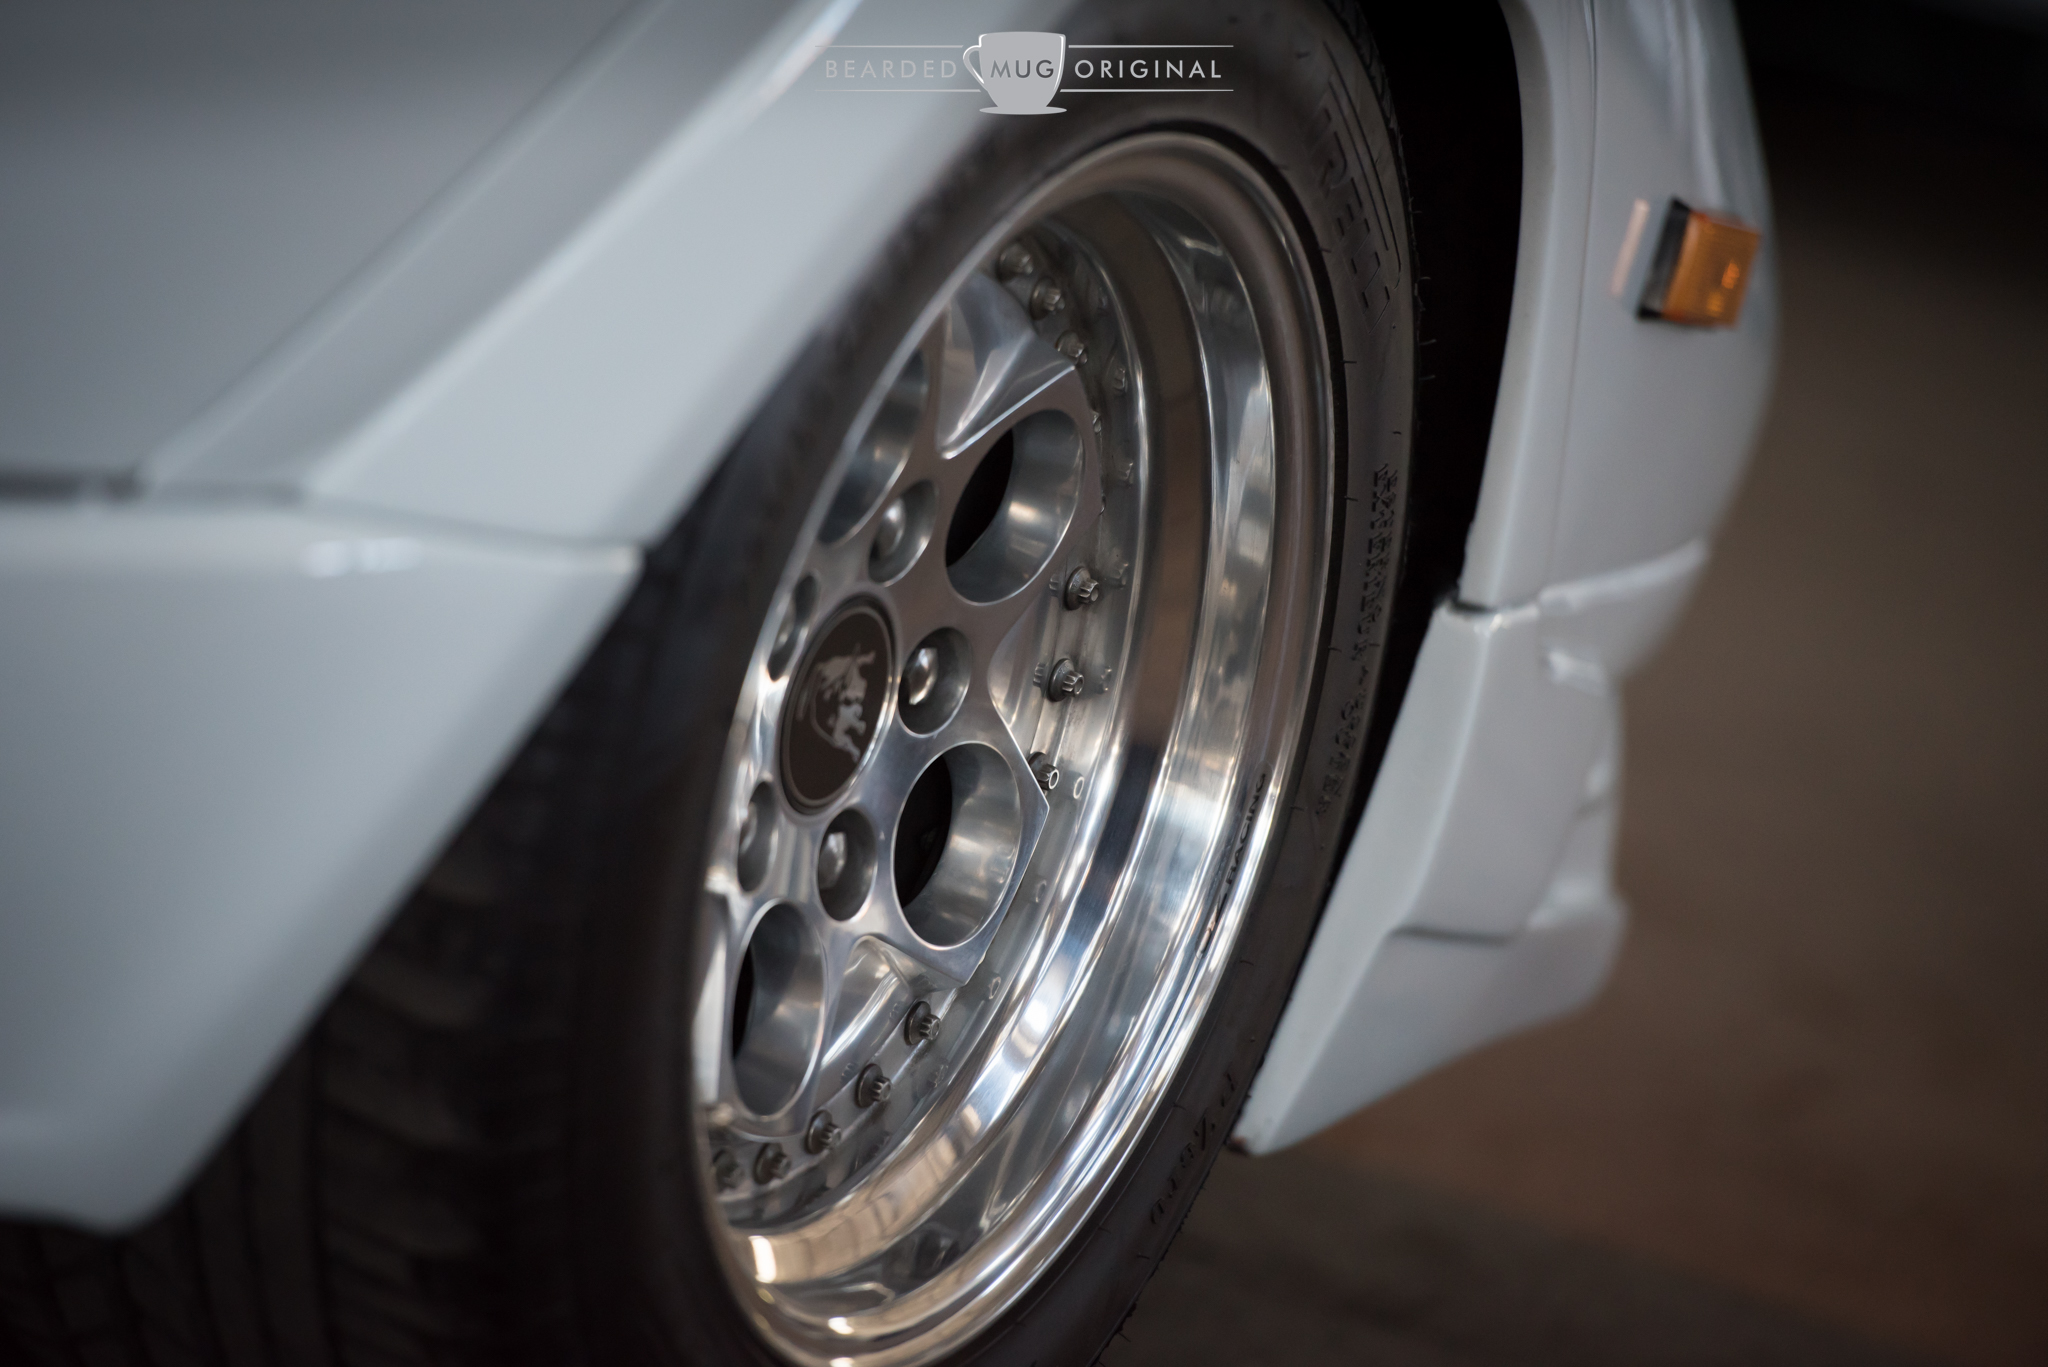 This wheel, along with three others just like it as well as the car they come with, can be all yours for the paltry sum of a cool half mil.